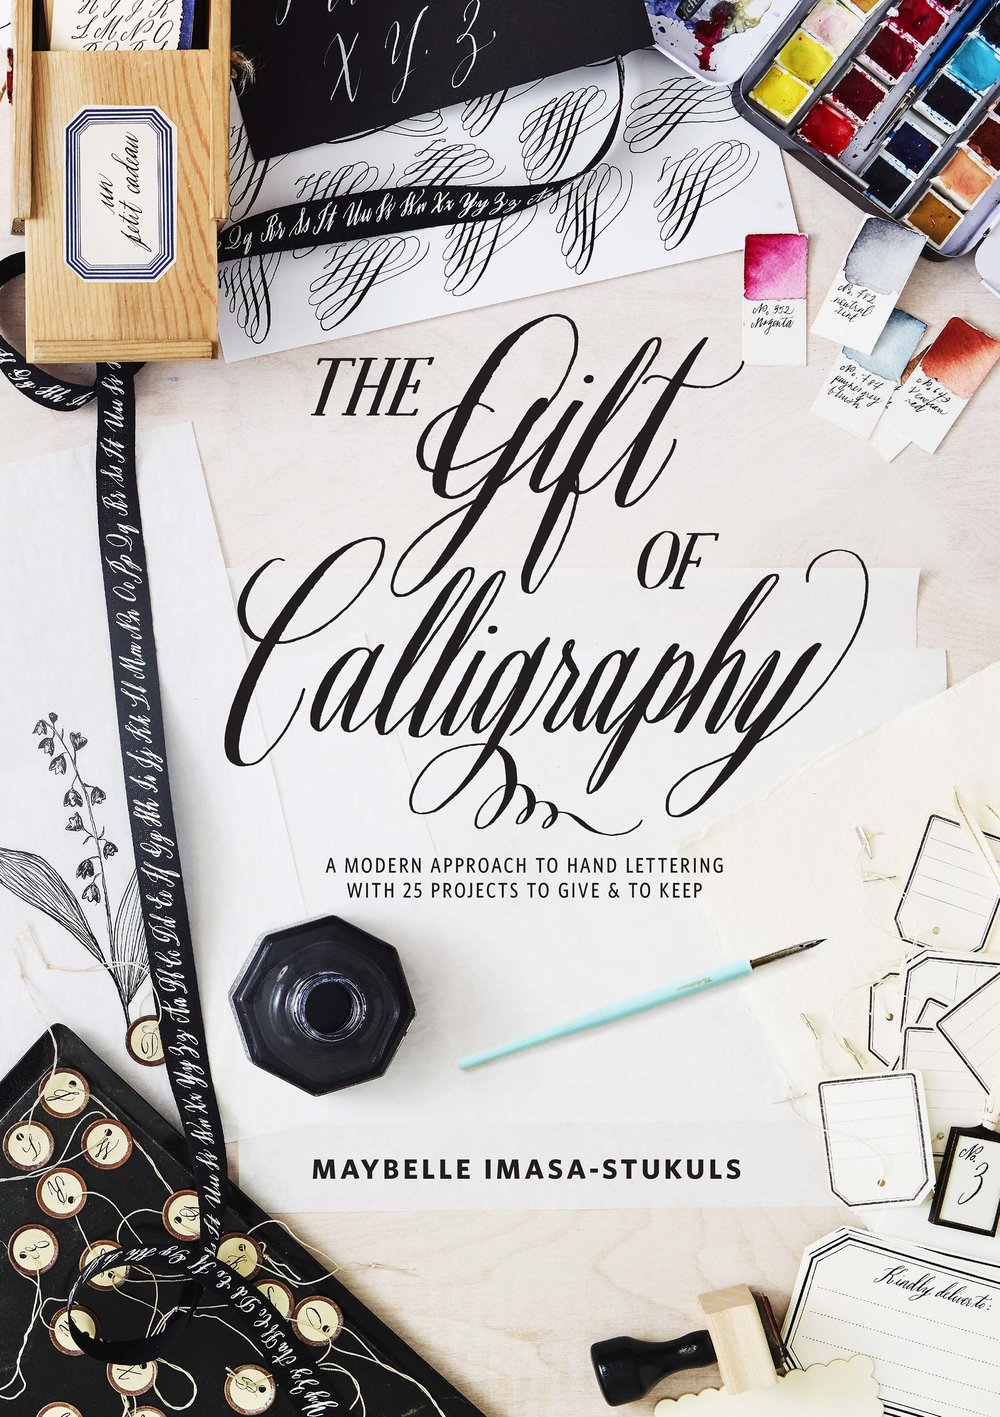 MAYB_The-GIft-of-Calligraphy_1p_COVER_FINAL_crop.jpg